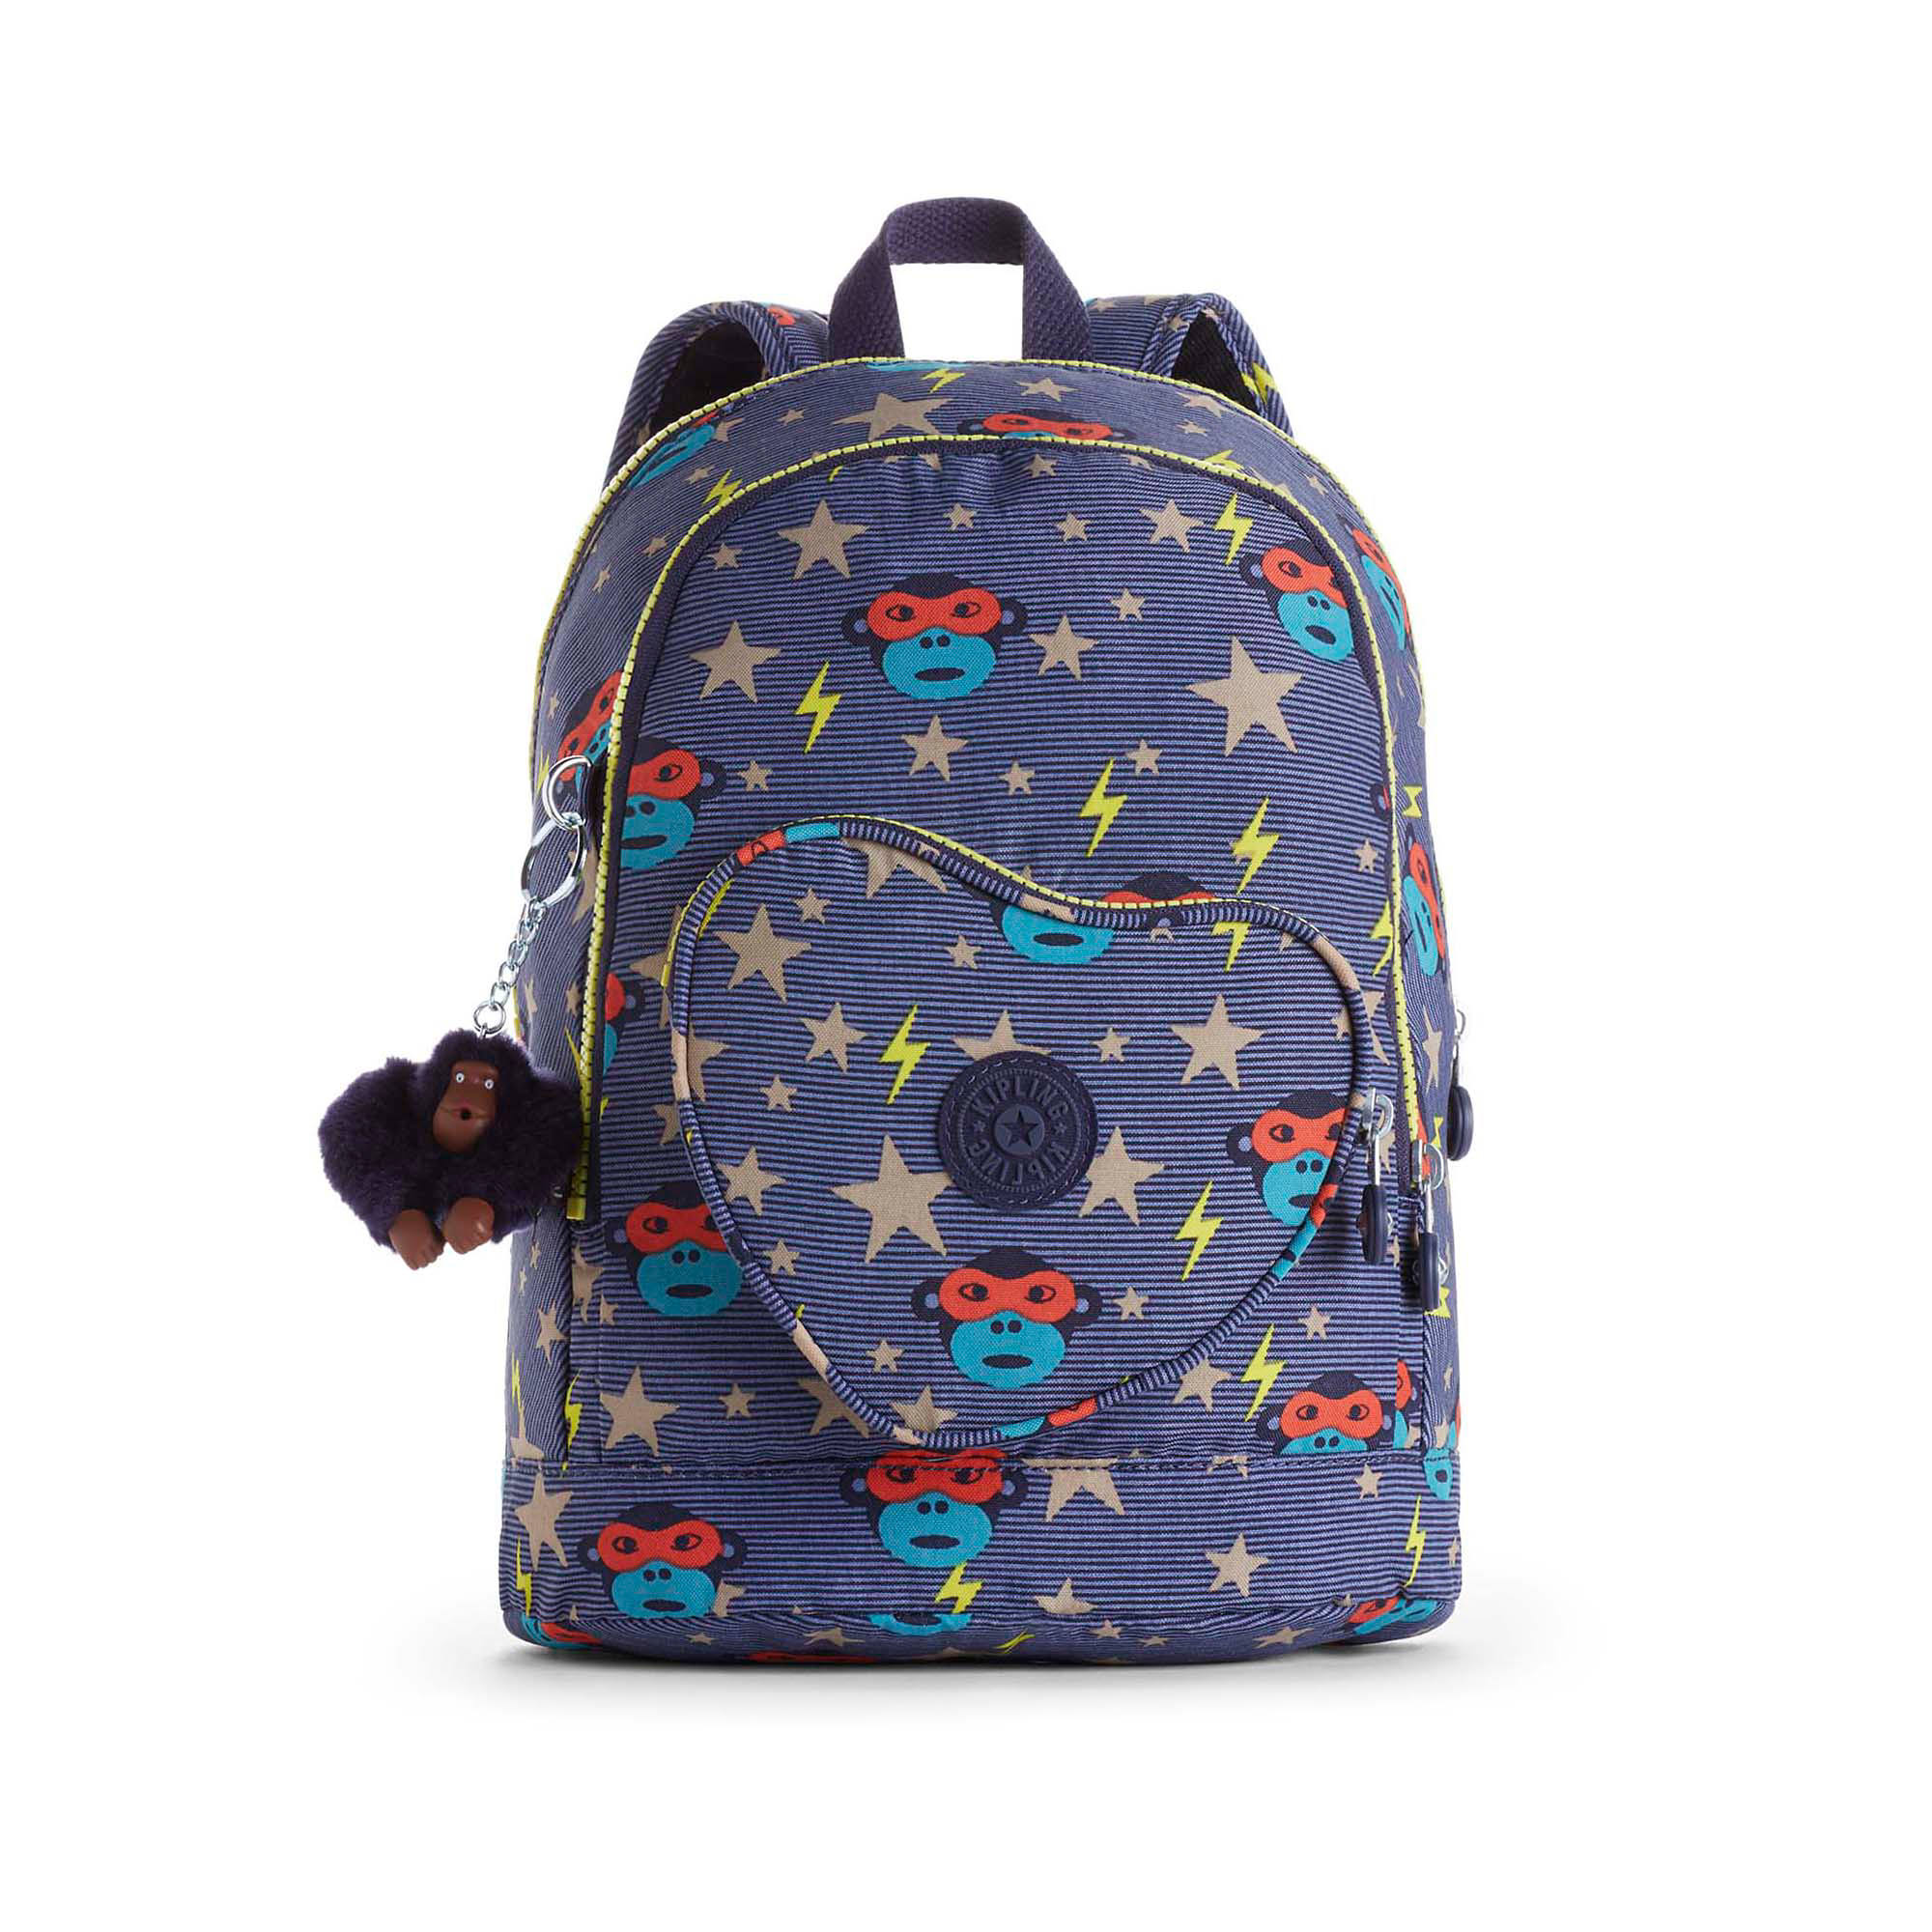 27b2d3475a Heart Printed Kids Backpack